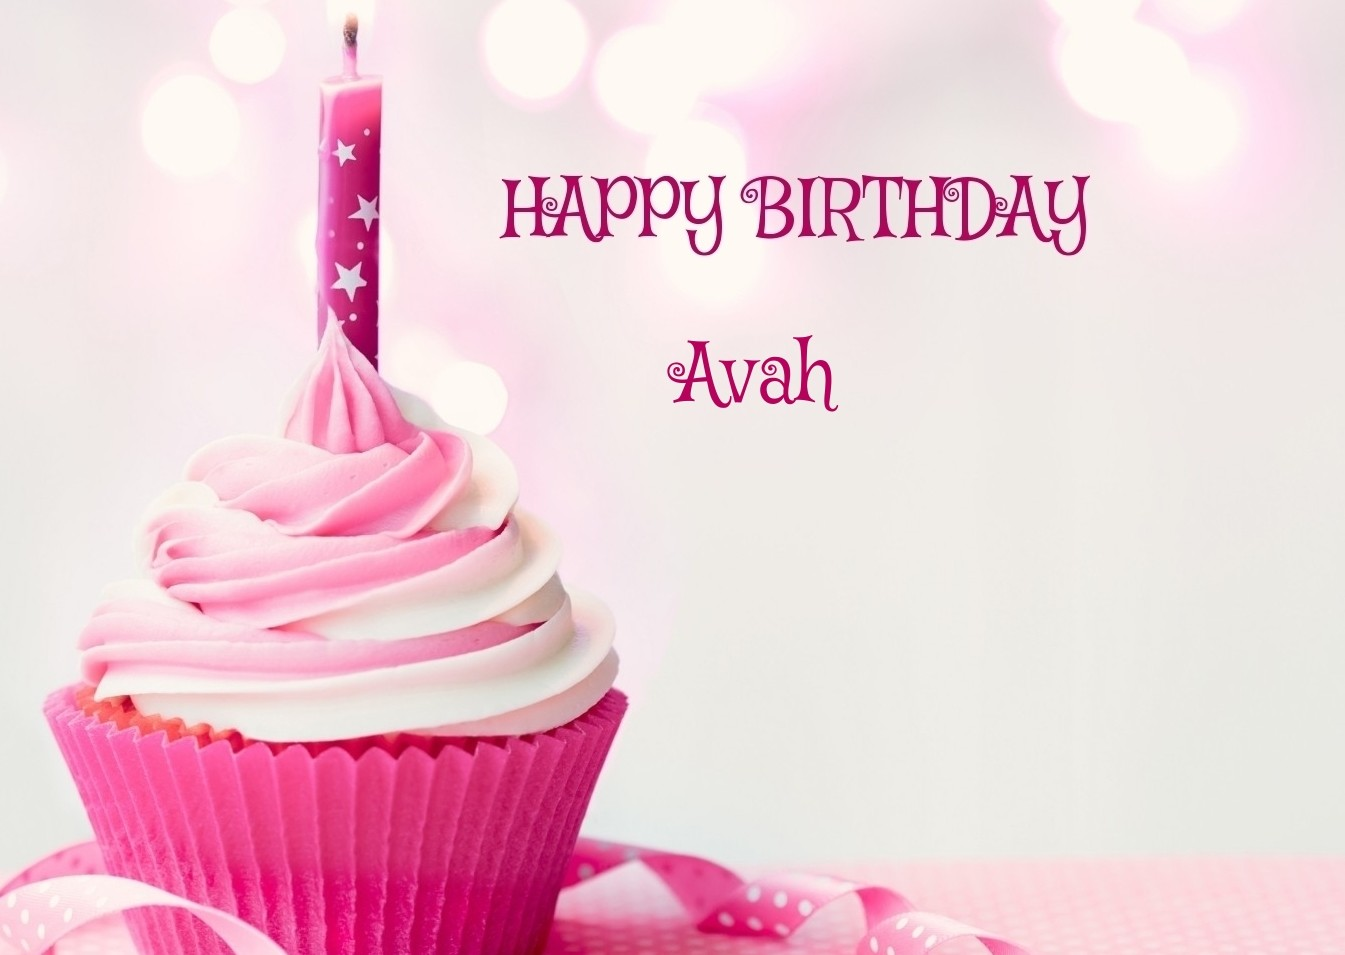 Happy Birthday Avah